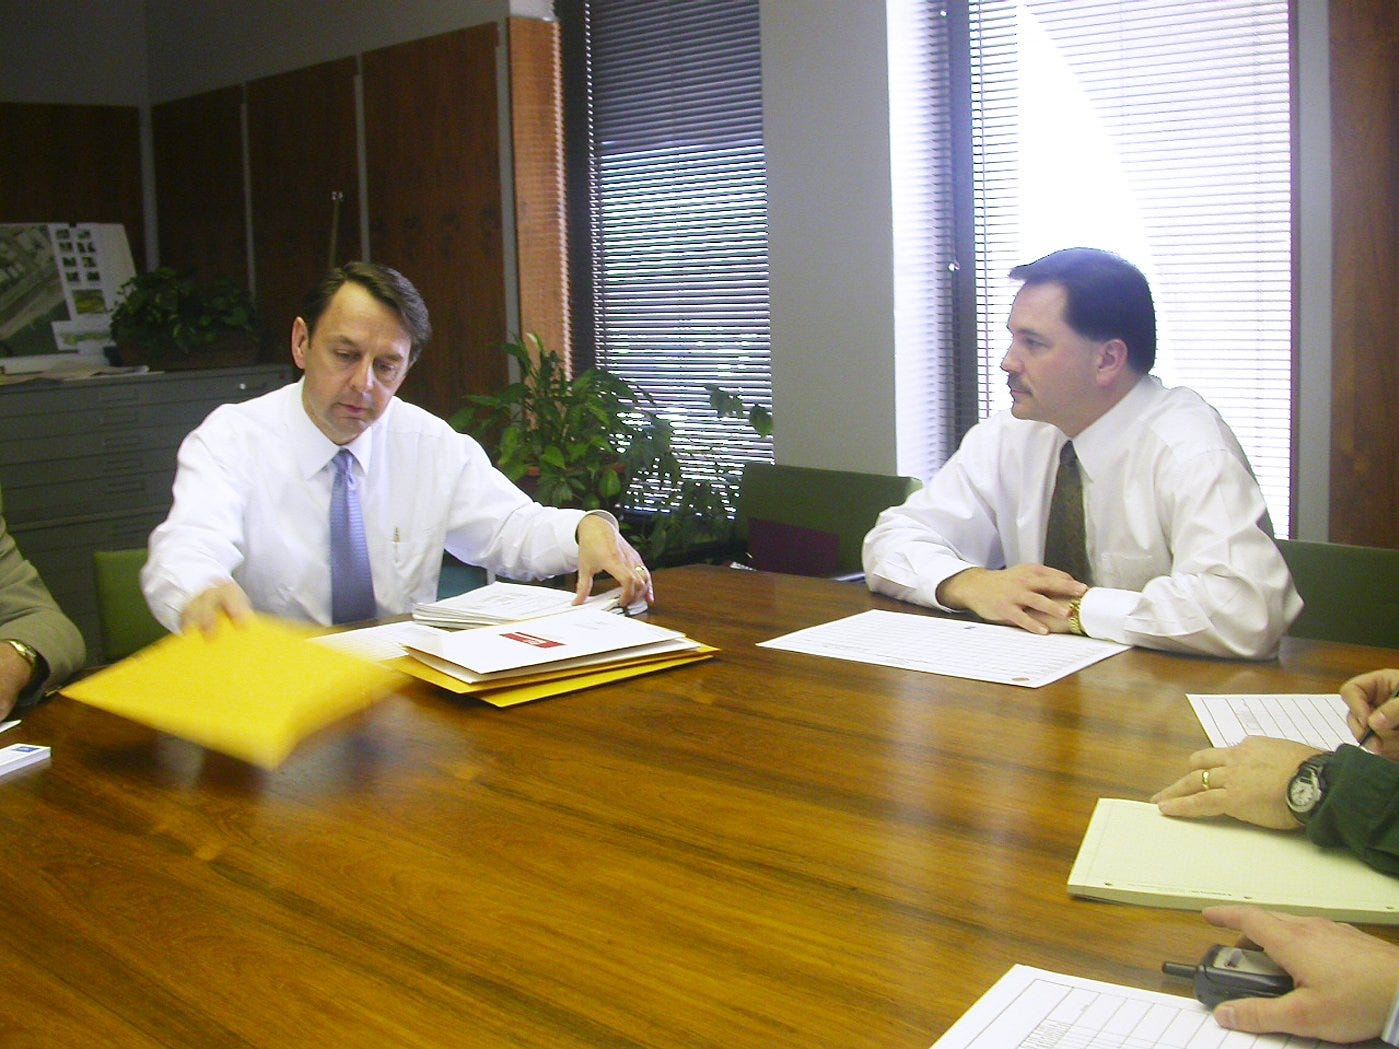 "-  -Text: Three photos are attached of the bid opening in Jeffersonville this afternoon for the Quartermaster Depot remodeling. In the photos with two people, Architect Wayne Estopinal is to the left, opening bids, next to Jeffersonville Mayor Rob Waiz on right. Ben Hershberg Photo Feb 15, 05-  -Caption: By Ben Zion Hershberg, The Courier-Journal; Architect Wayne Estopinal, left, said he must thoroughly review the six bids received. ""We are going to have to rethink,"" Mayor Rob Waiz said."